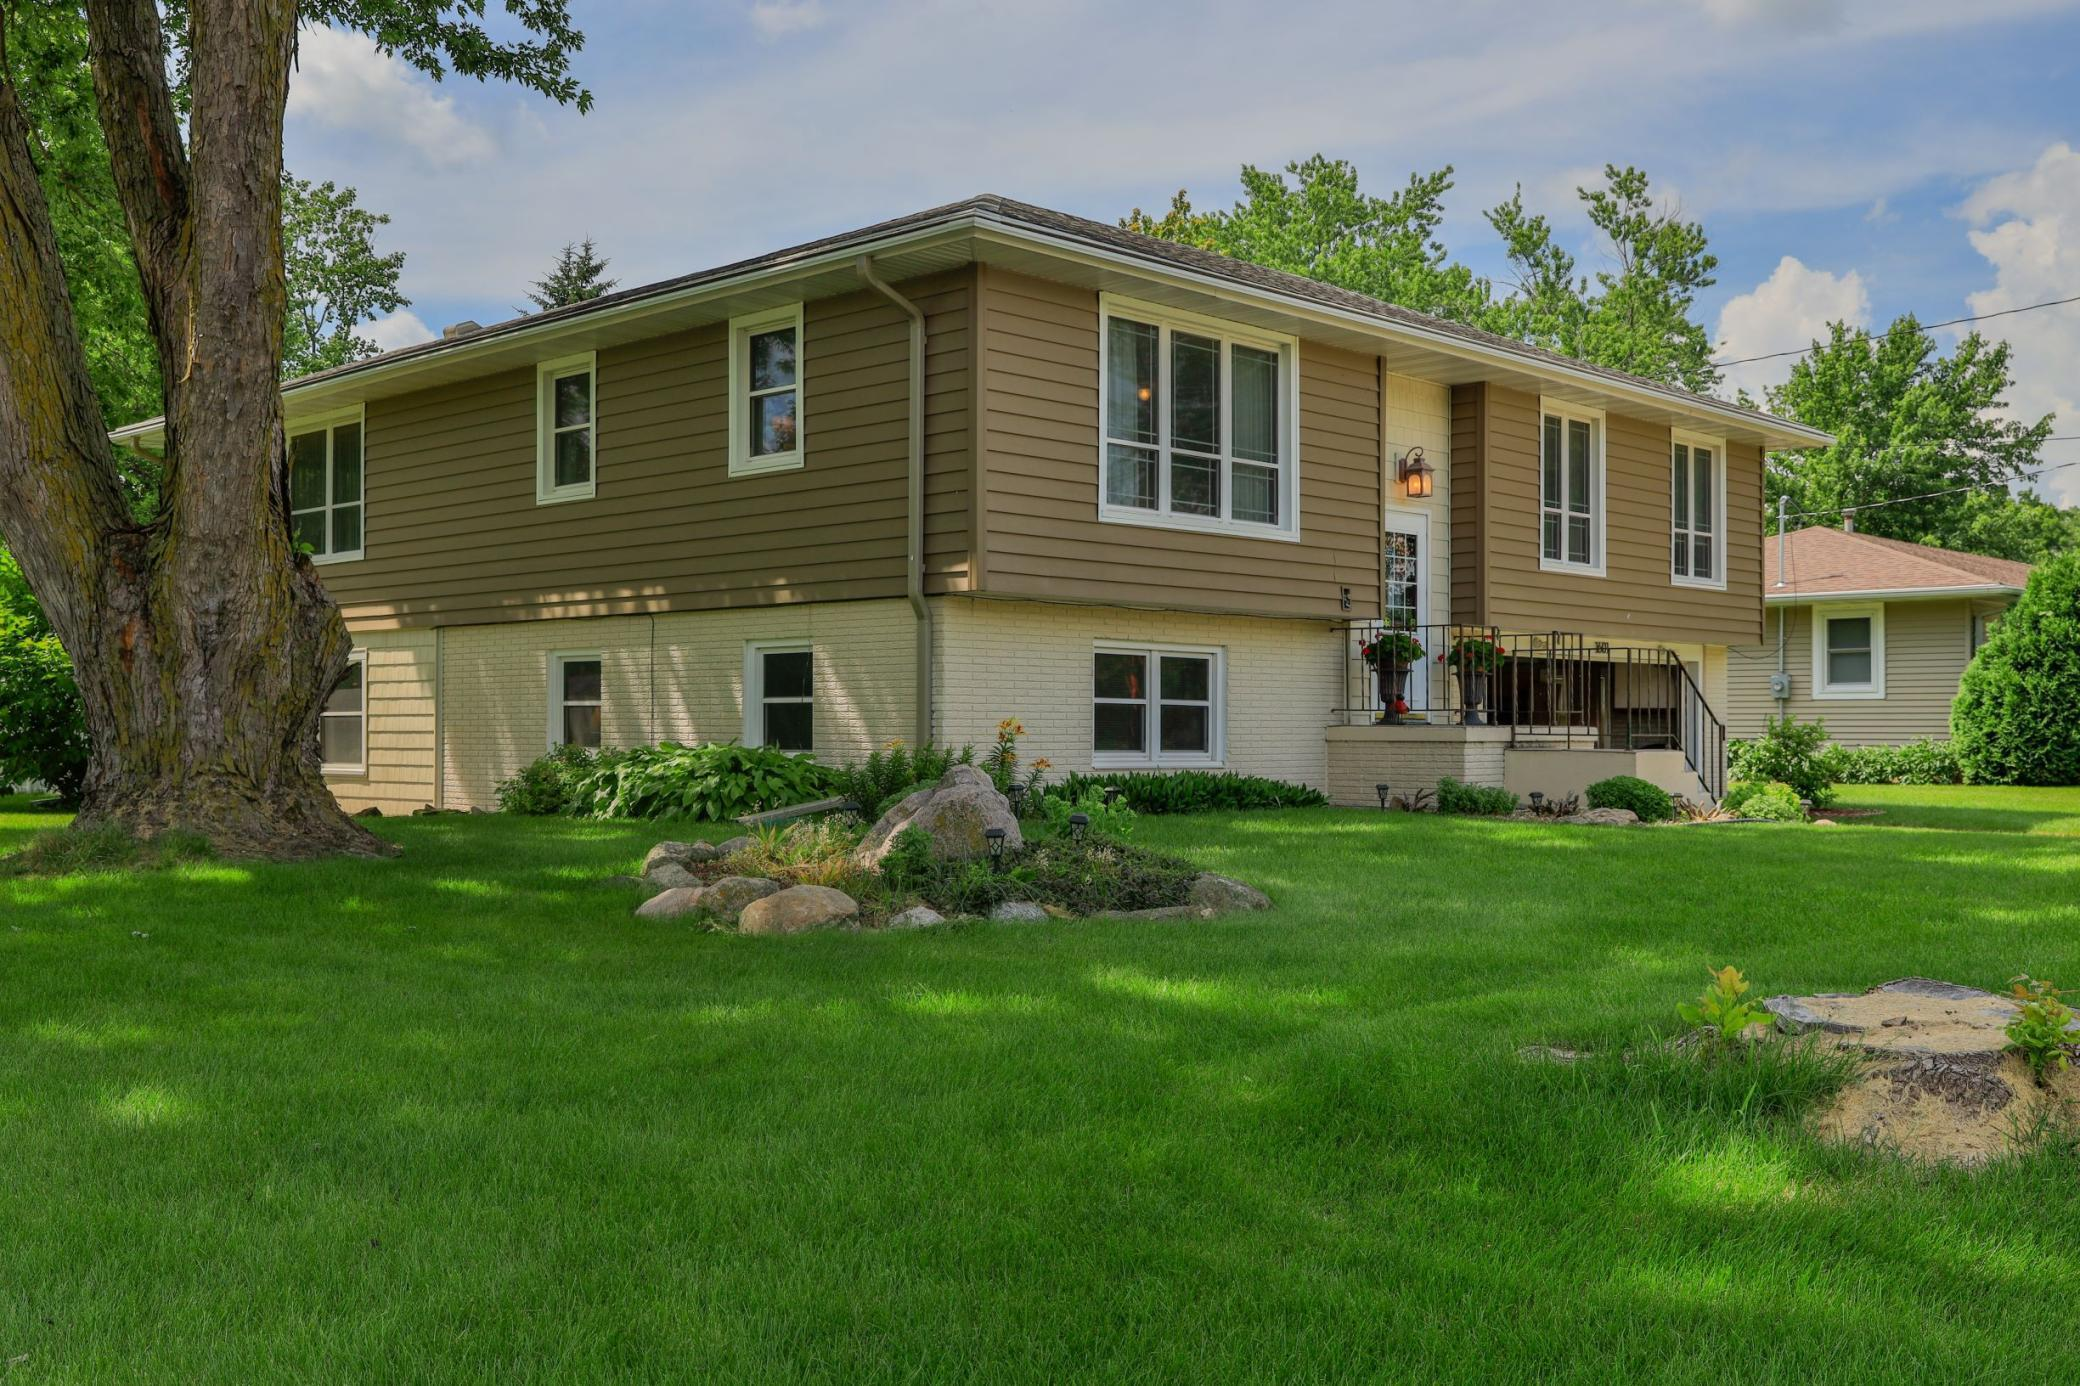 1601 Hobart, Grinnell, Iowa 50112-1249, 4 Bedrooms Bedrooms, ,1 BathroomBathrooms,Single Family,For Sale,Hobart,5618353